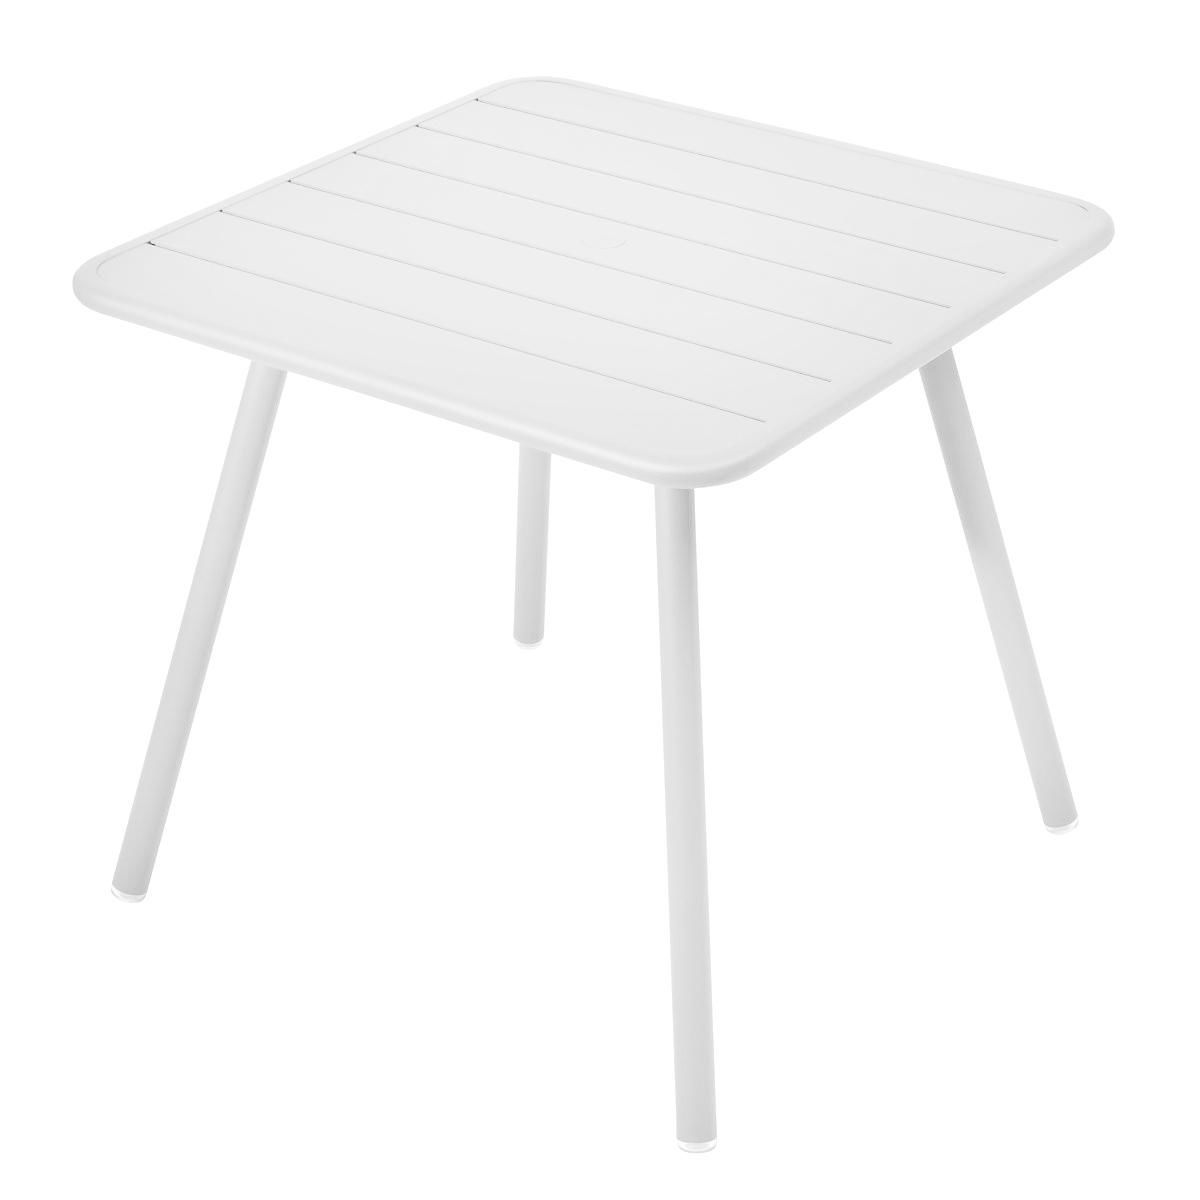 Luxembourg table 80x80x74cm fermob for Fermob luxembourg table